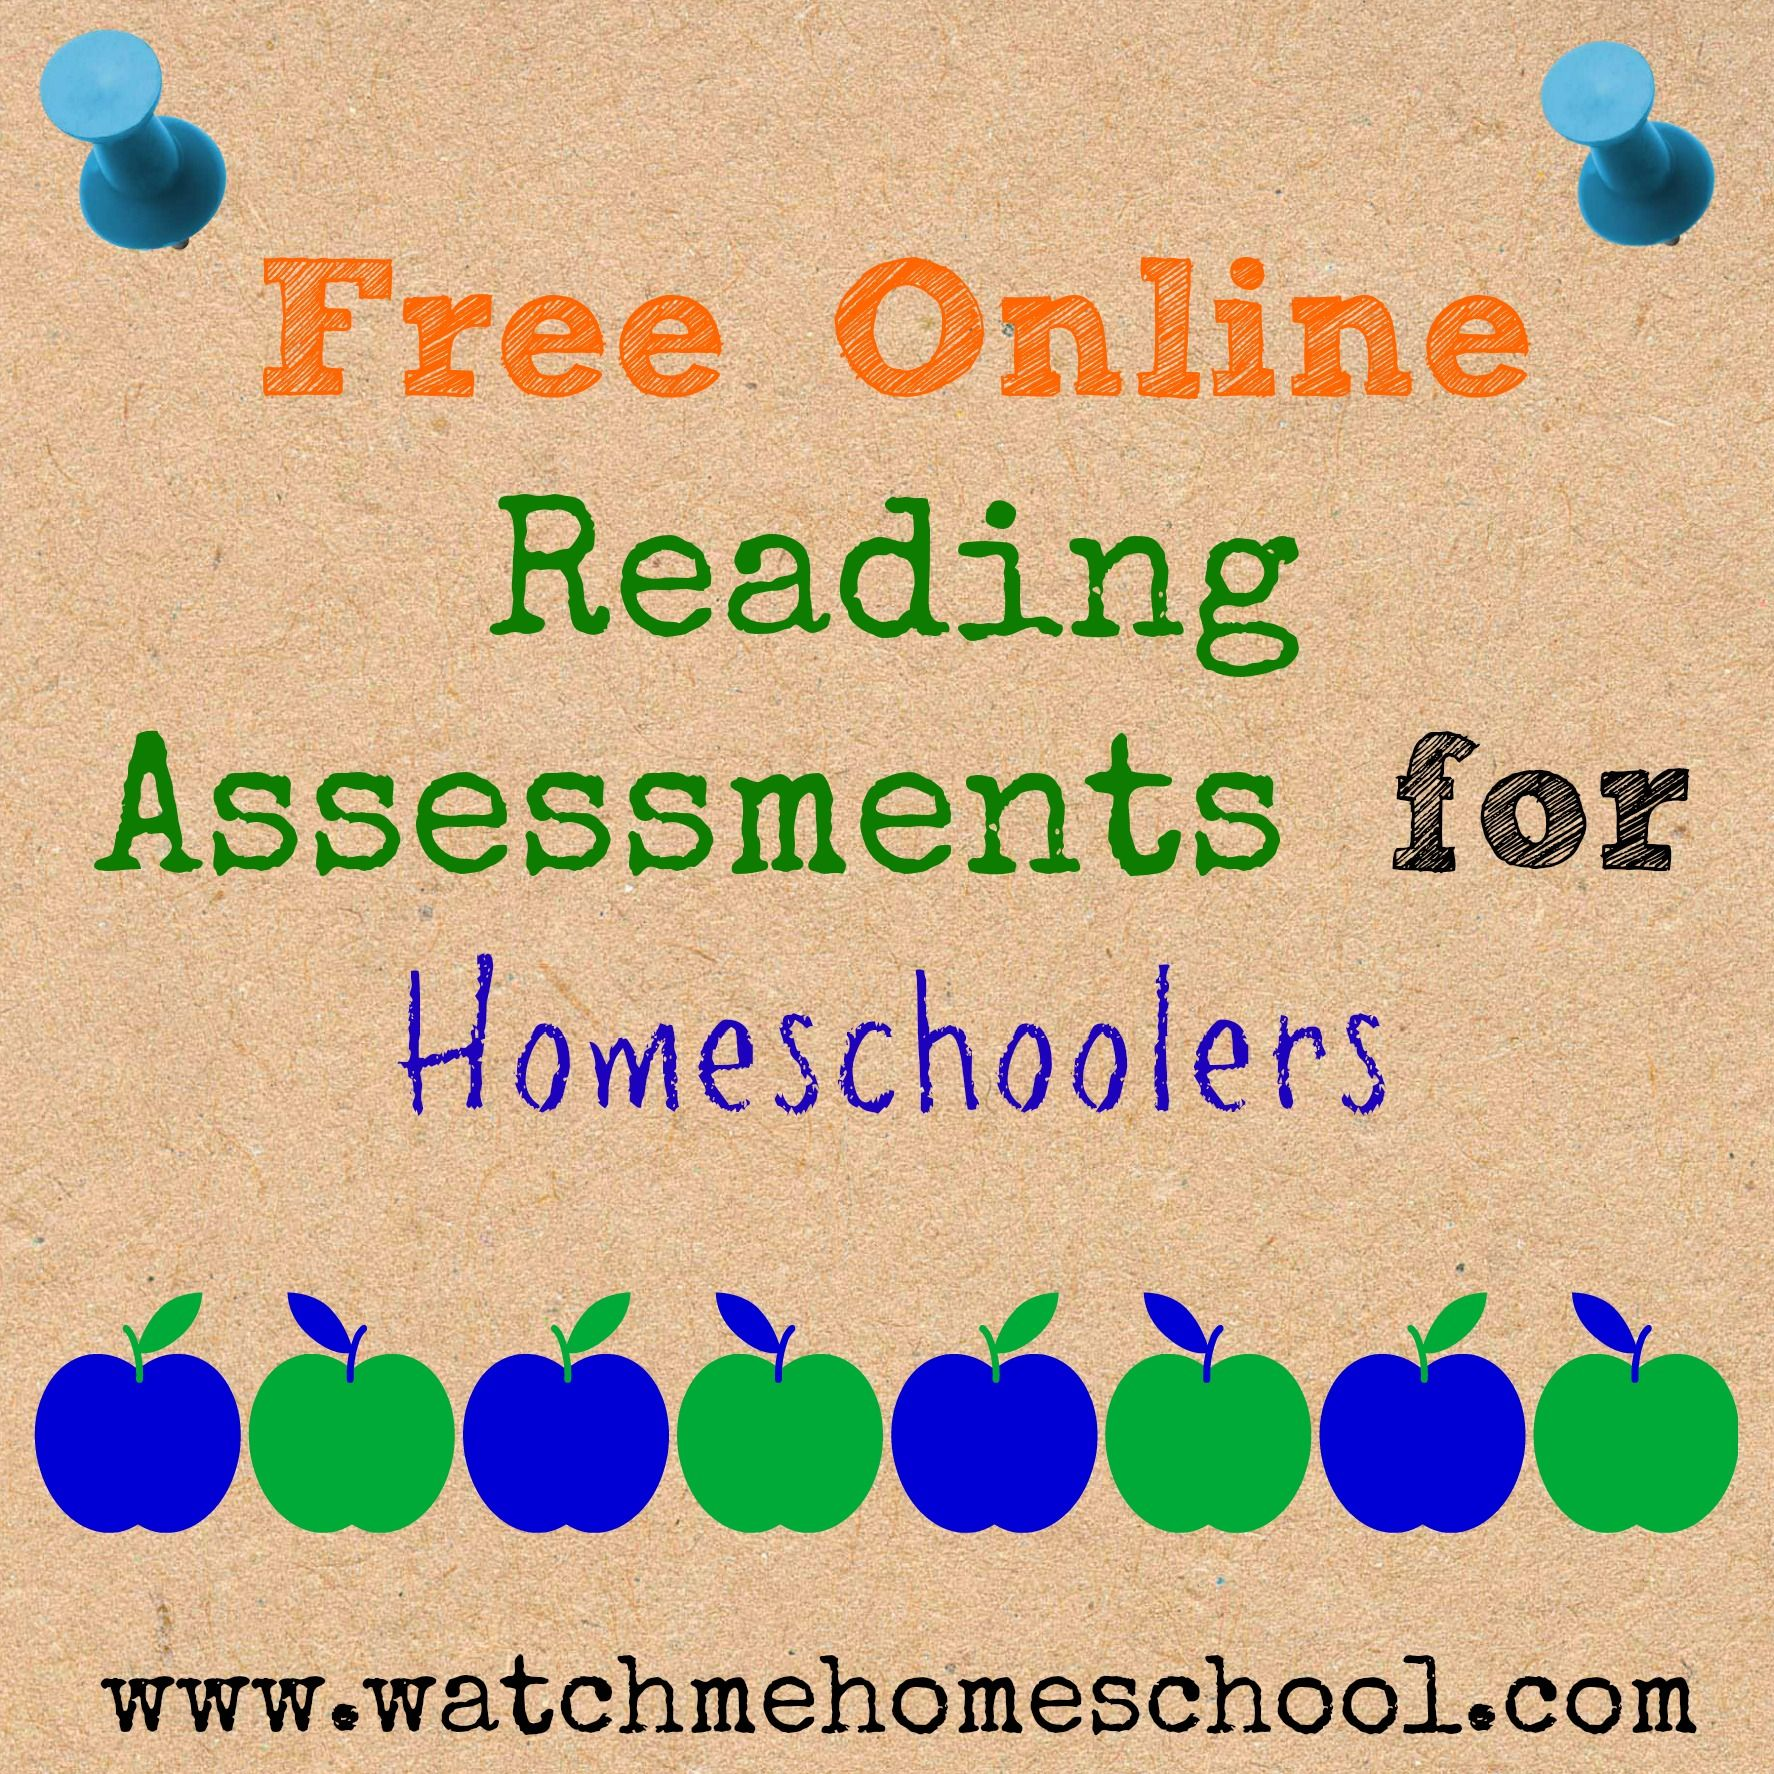 Free Online Reading Assessments for Homeschoolers - Watchmehomeschool